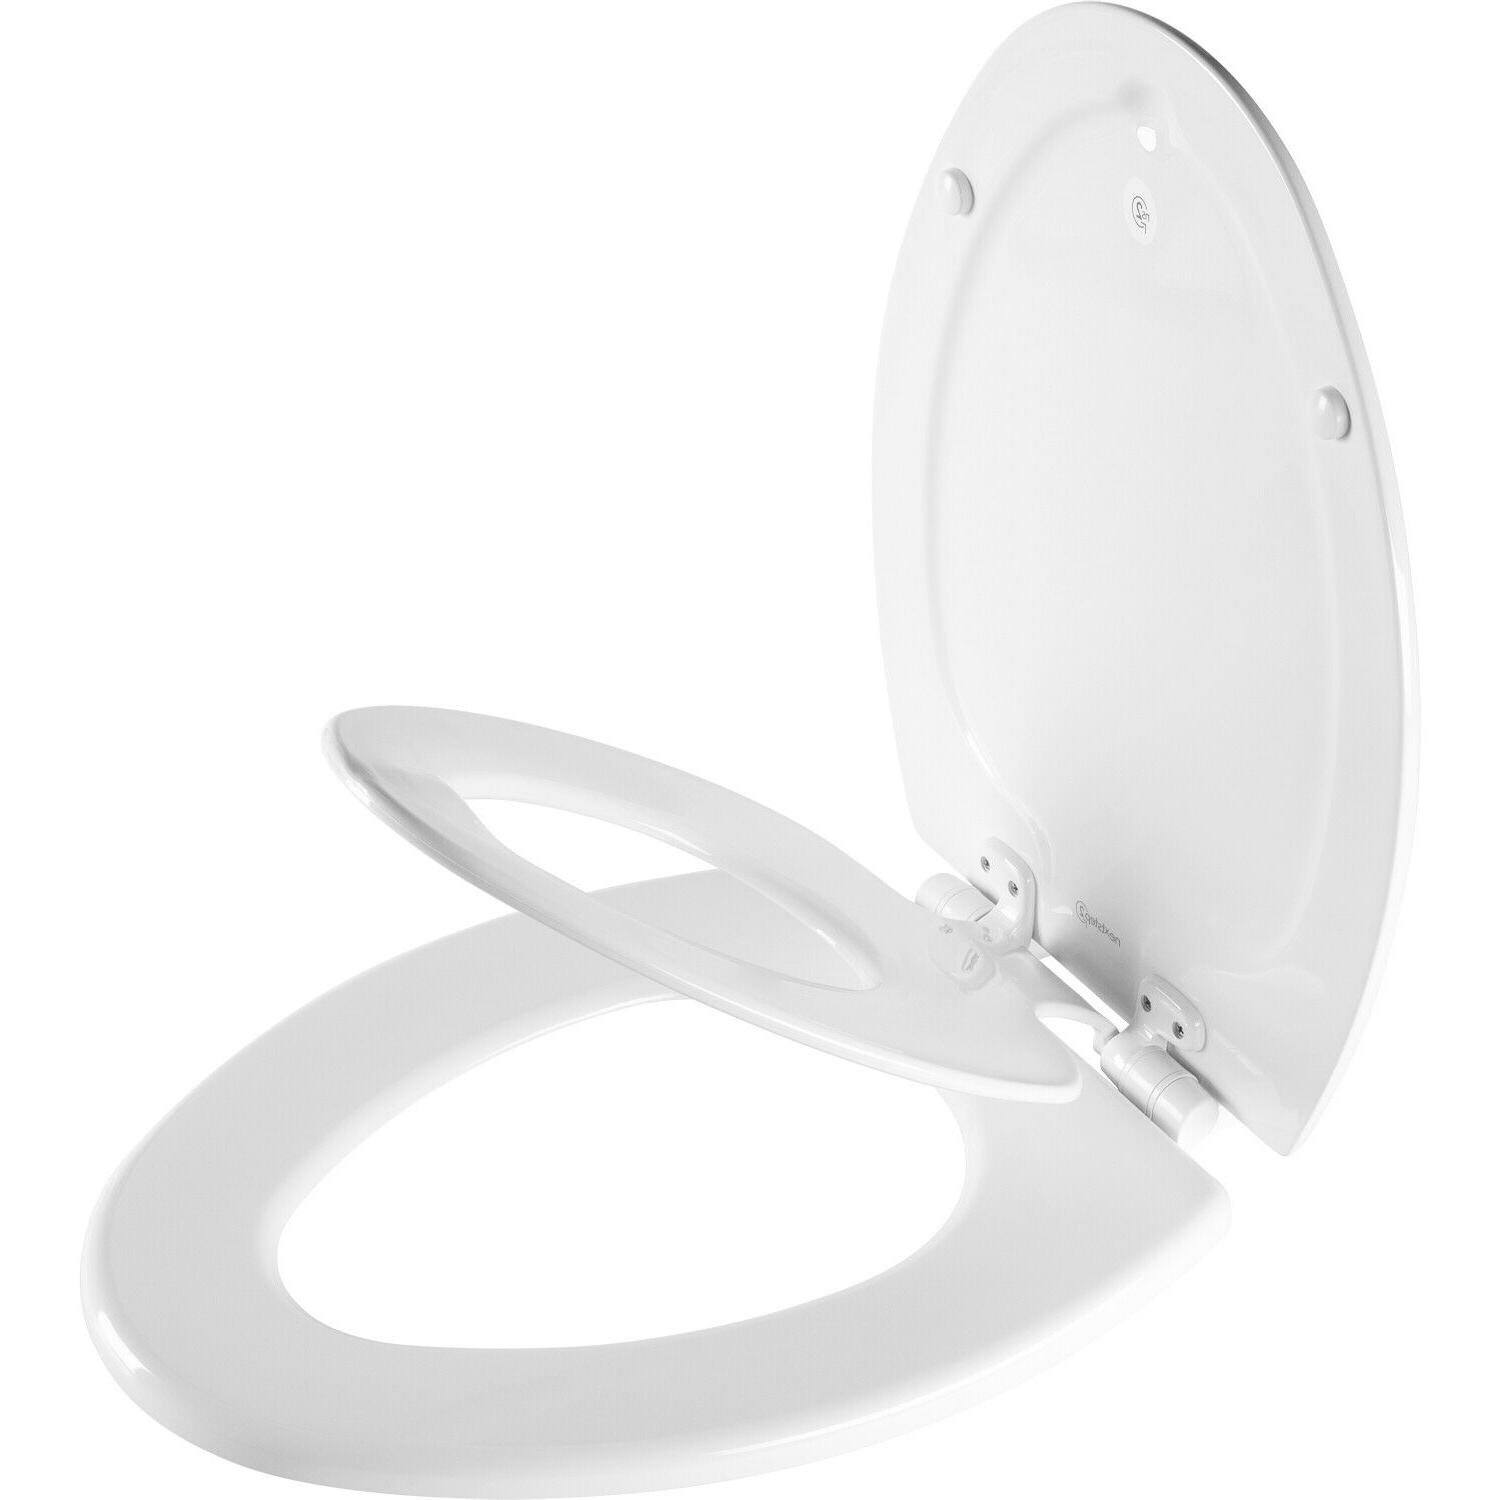 Bemis NEXT STEP Slow Close Easy Change Toilet Seat Round and